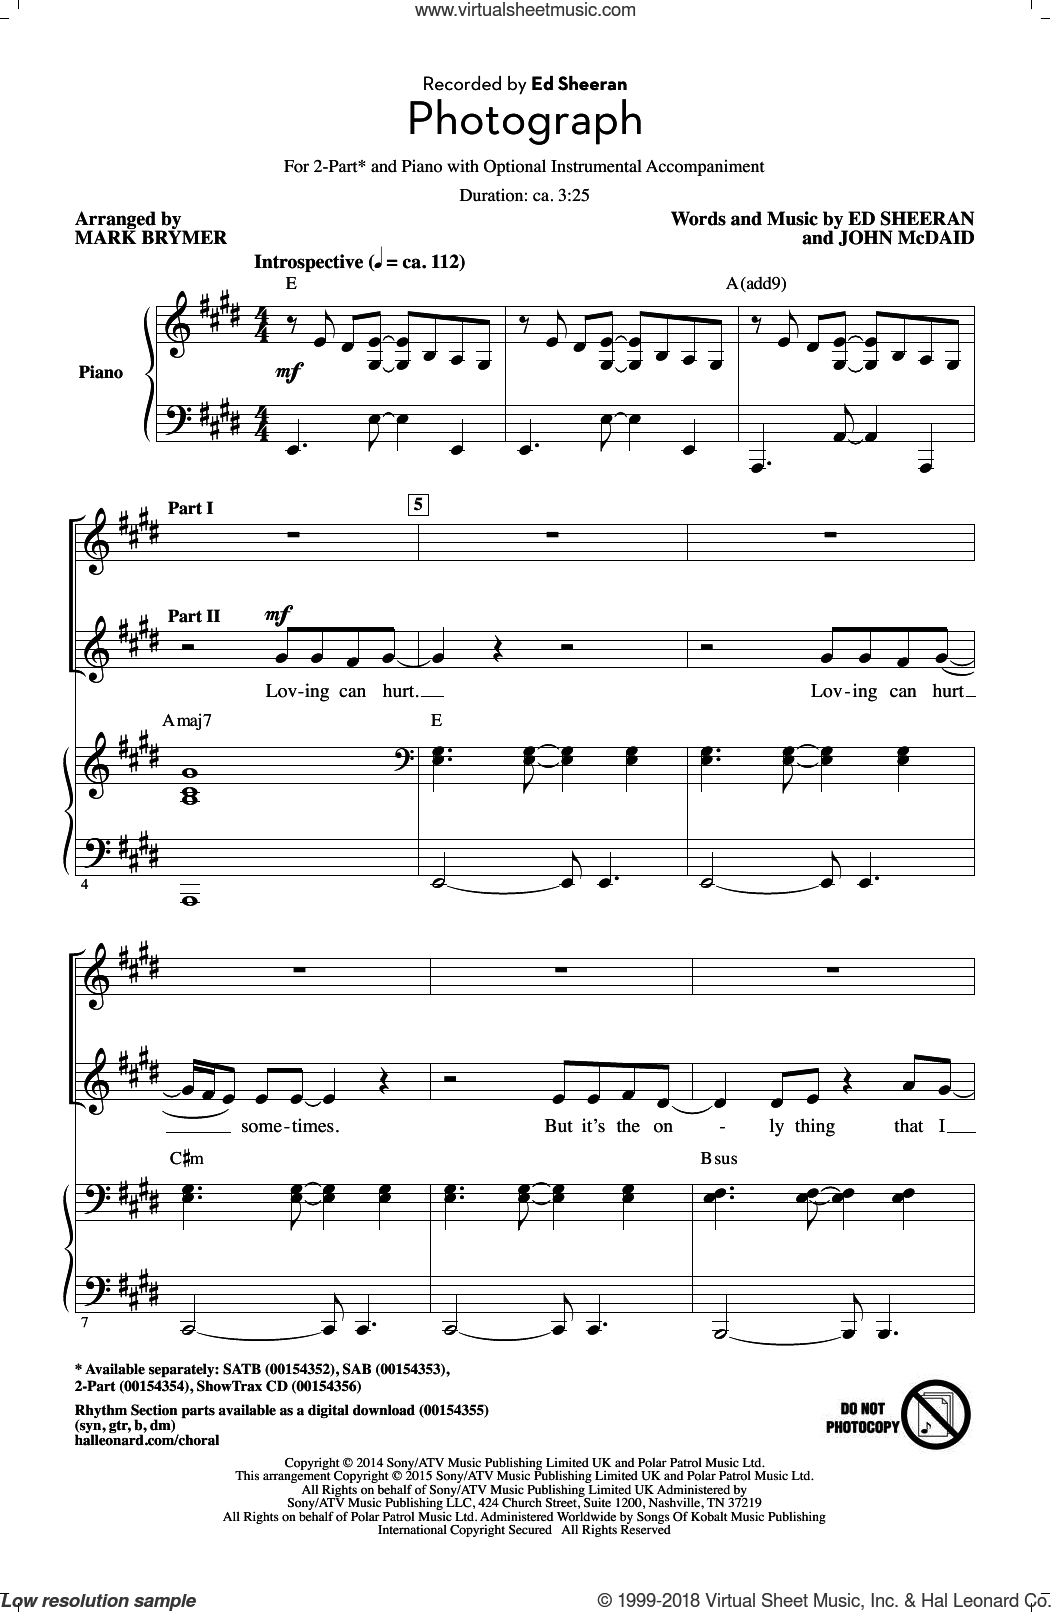 Photograph sheet music for choir and piano (duets) by Mark Brymer